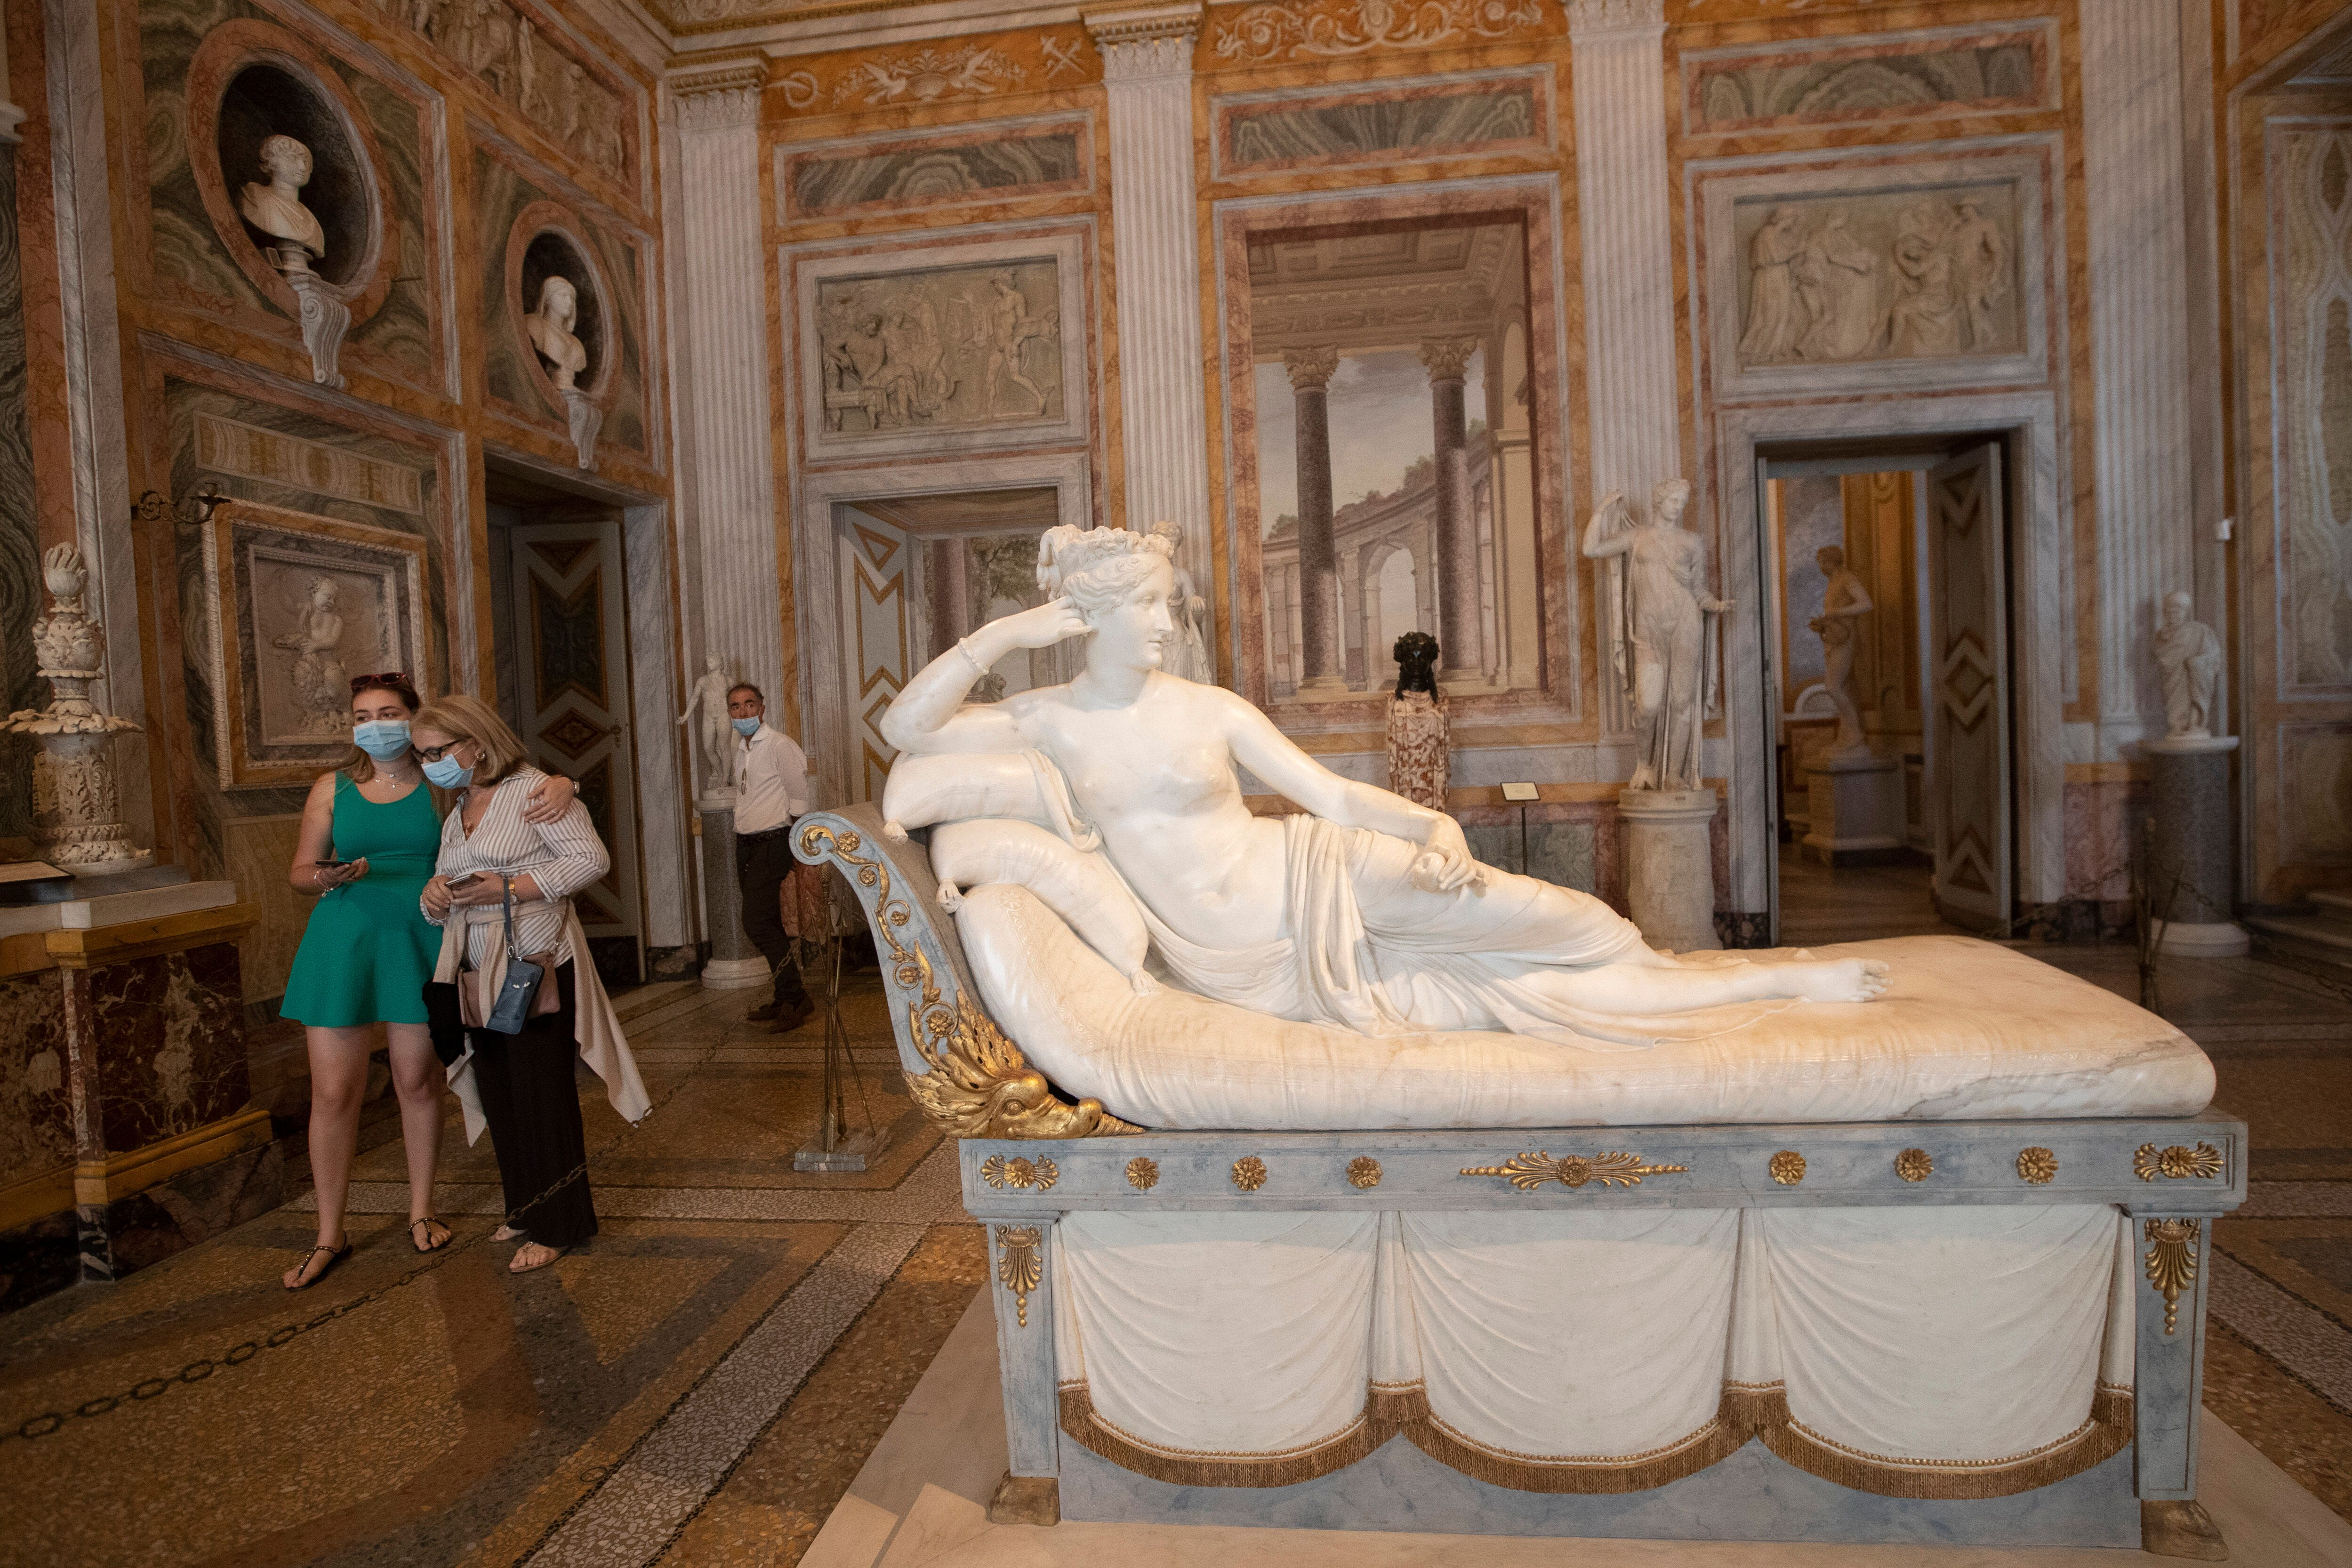 The marble version of the statue, which sits in the Galleria Borghese in Rome.